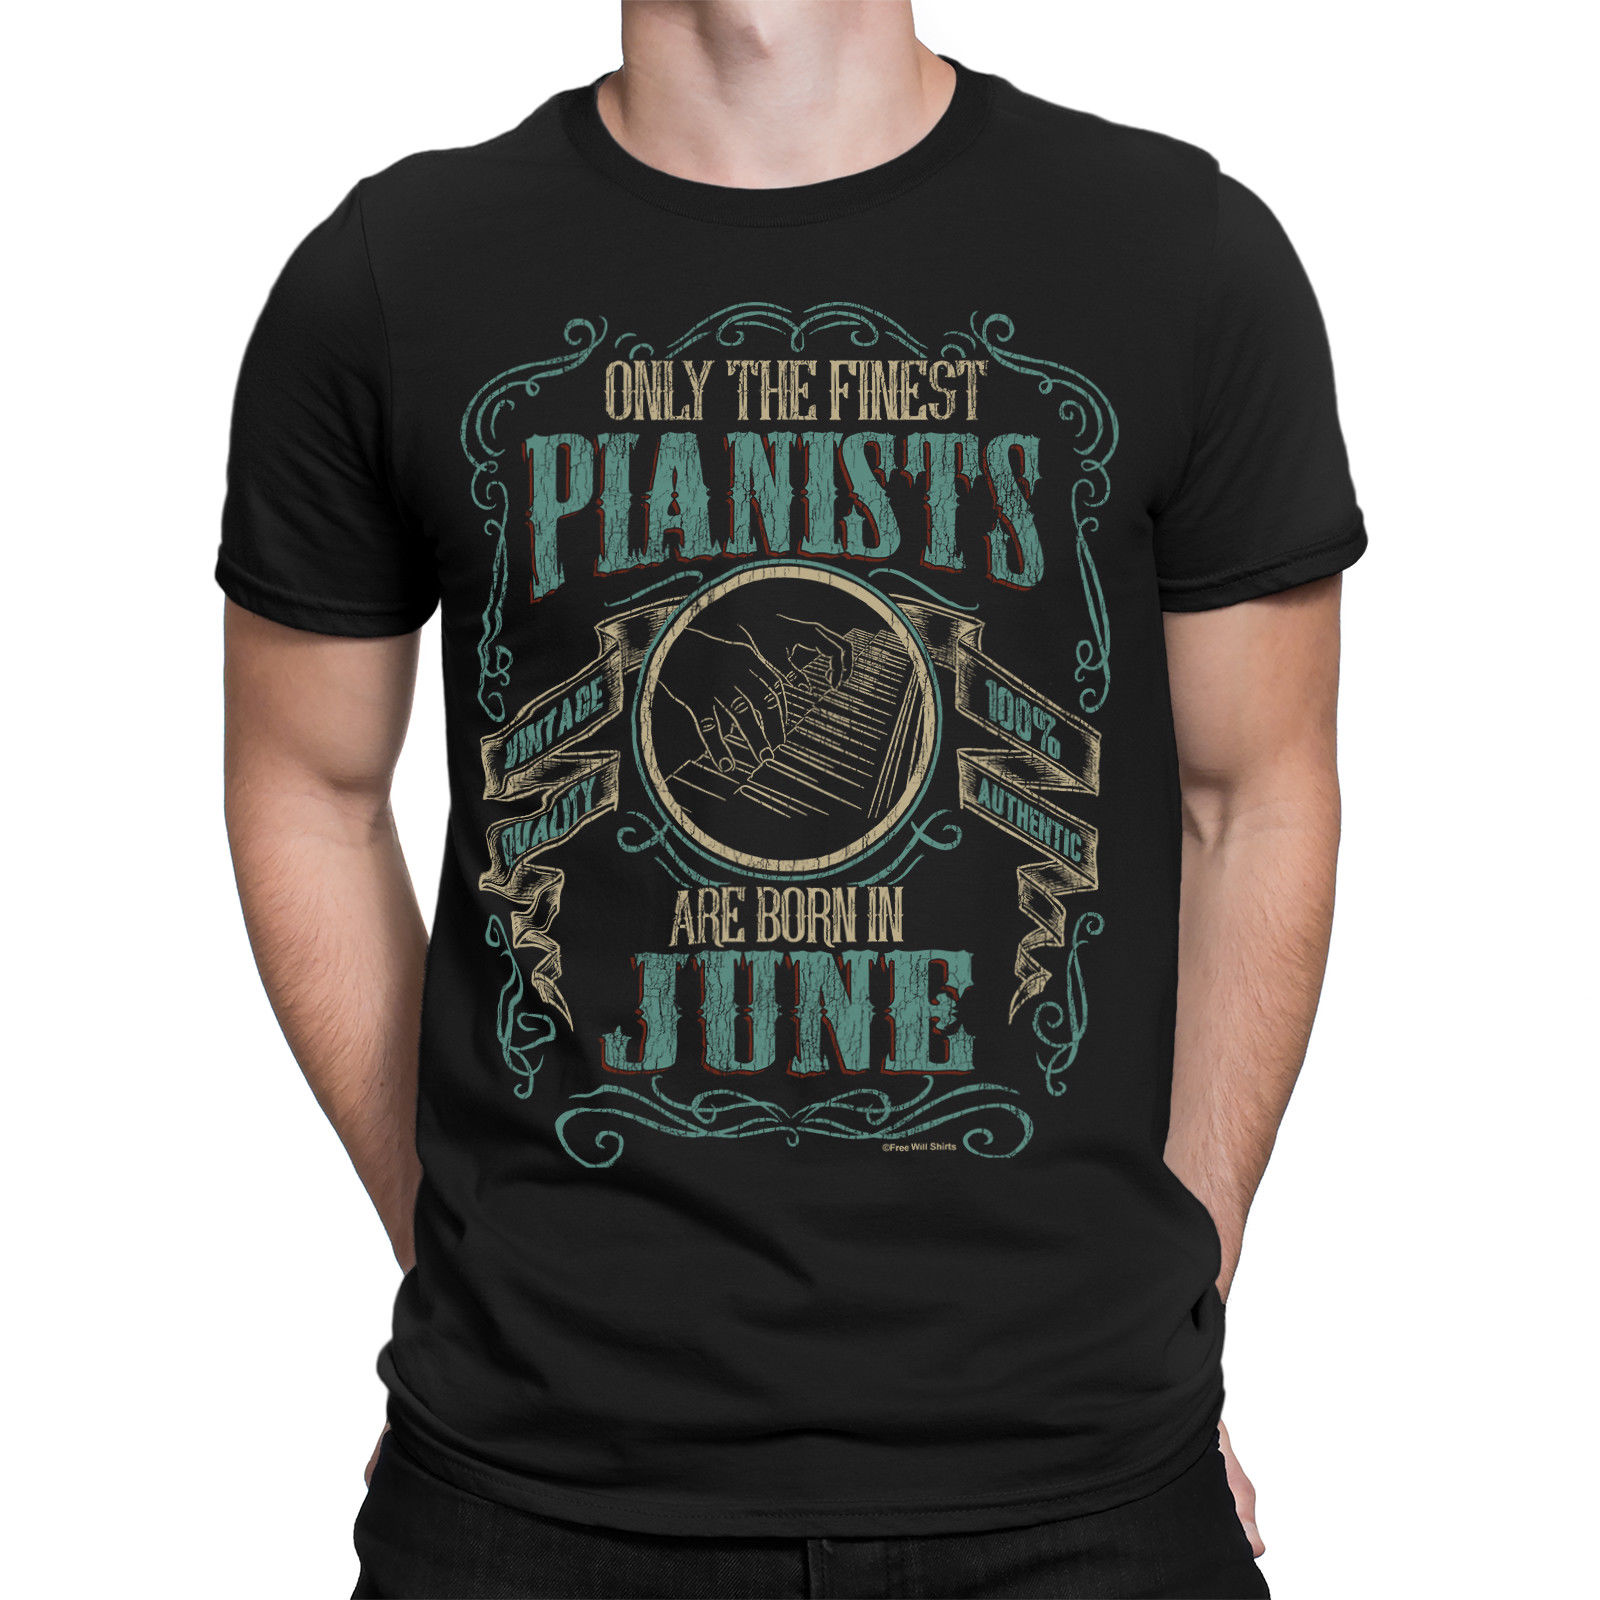 2019 Cool Tee Shirt Mens PIANO T-Shirt Finest PIANISTS Born in JUNE Music Birthday Fathers Day Summer T-shirt image